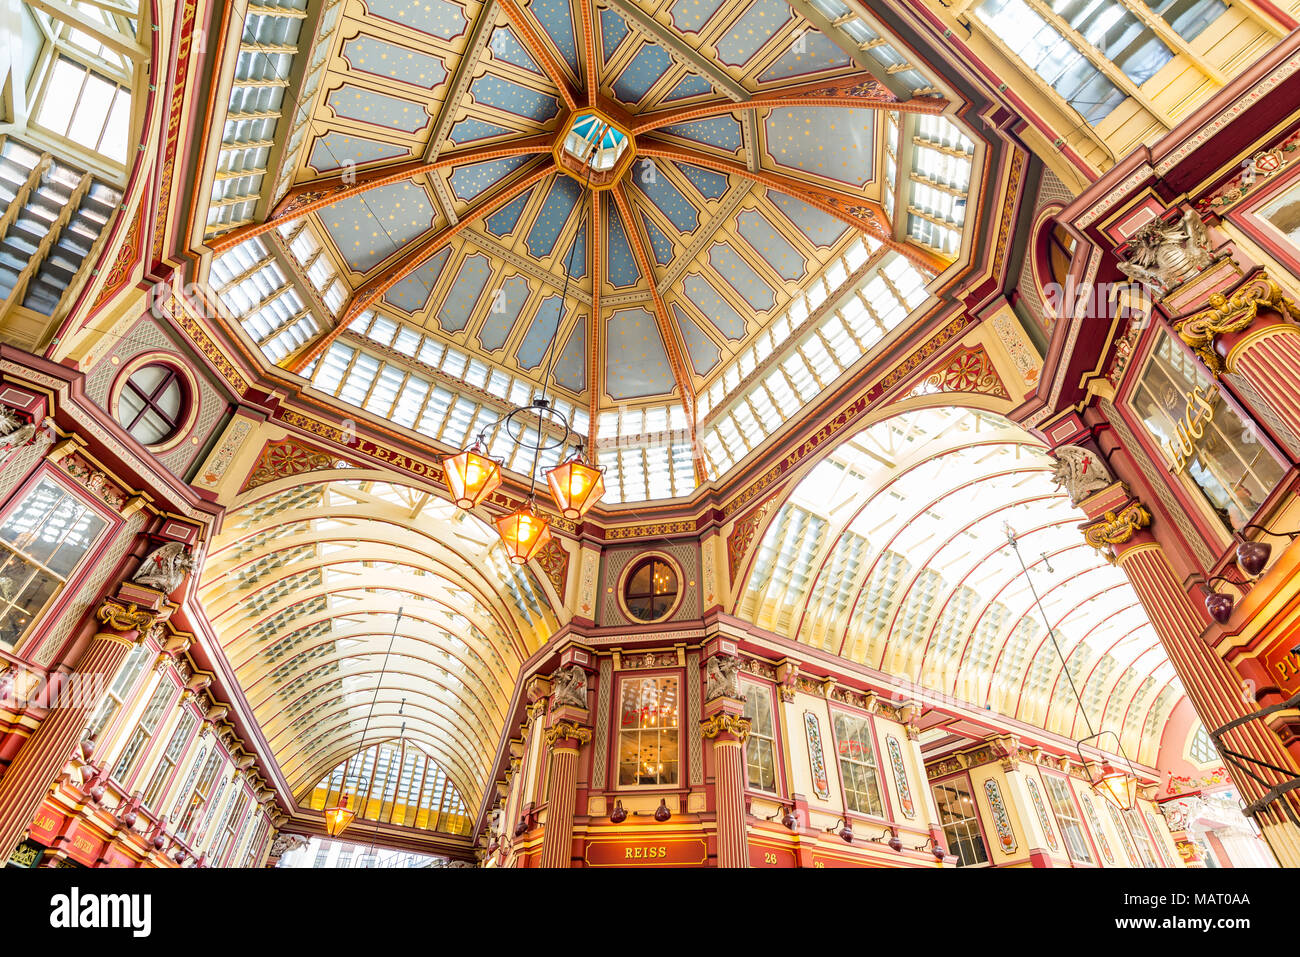 Leadenhall Market, City of London, UK - Stock Image